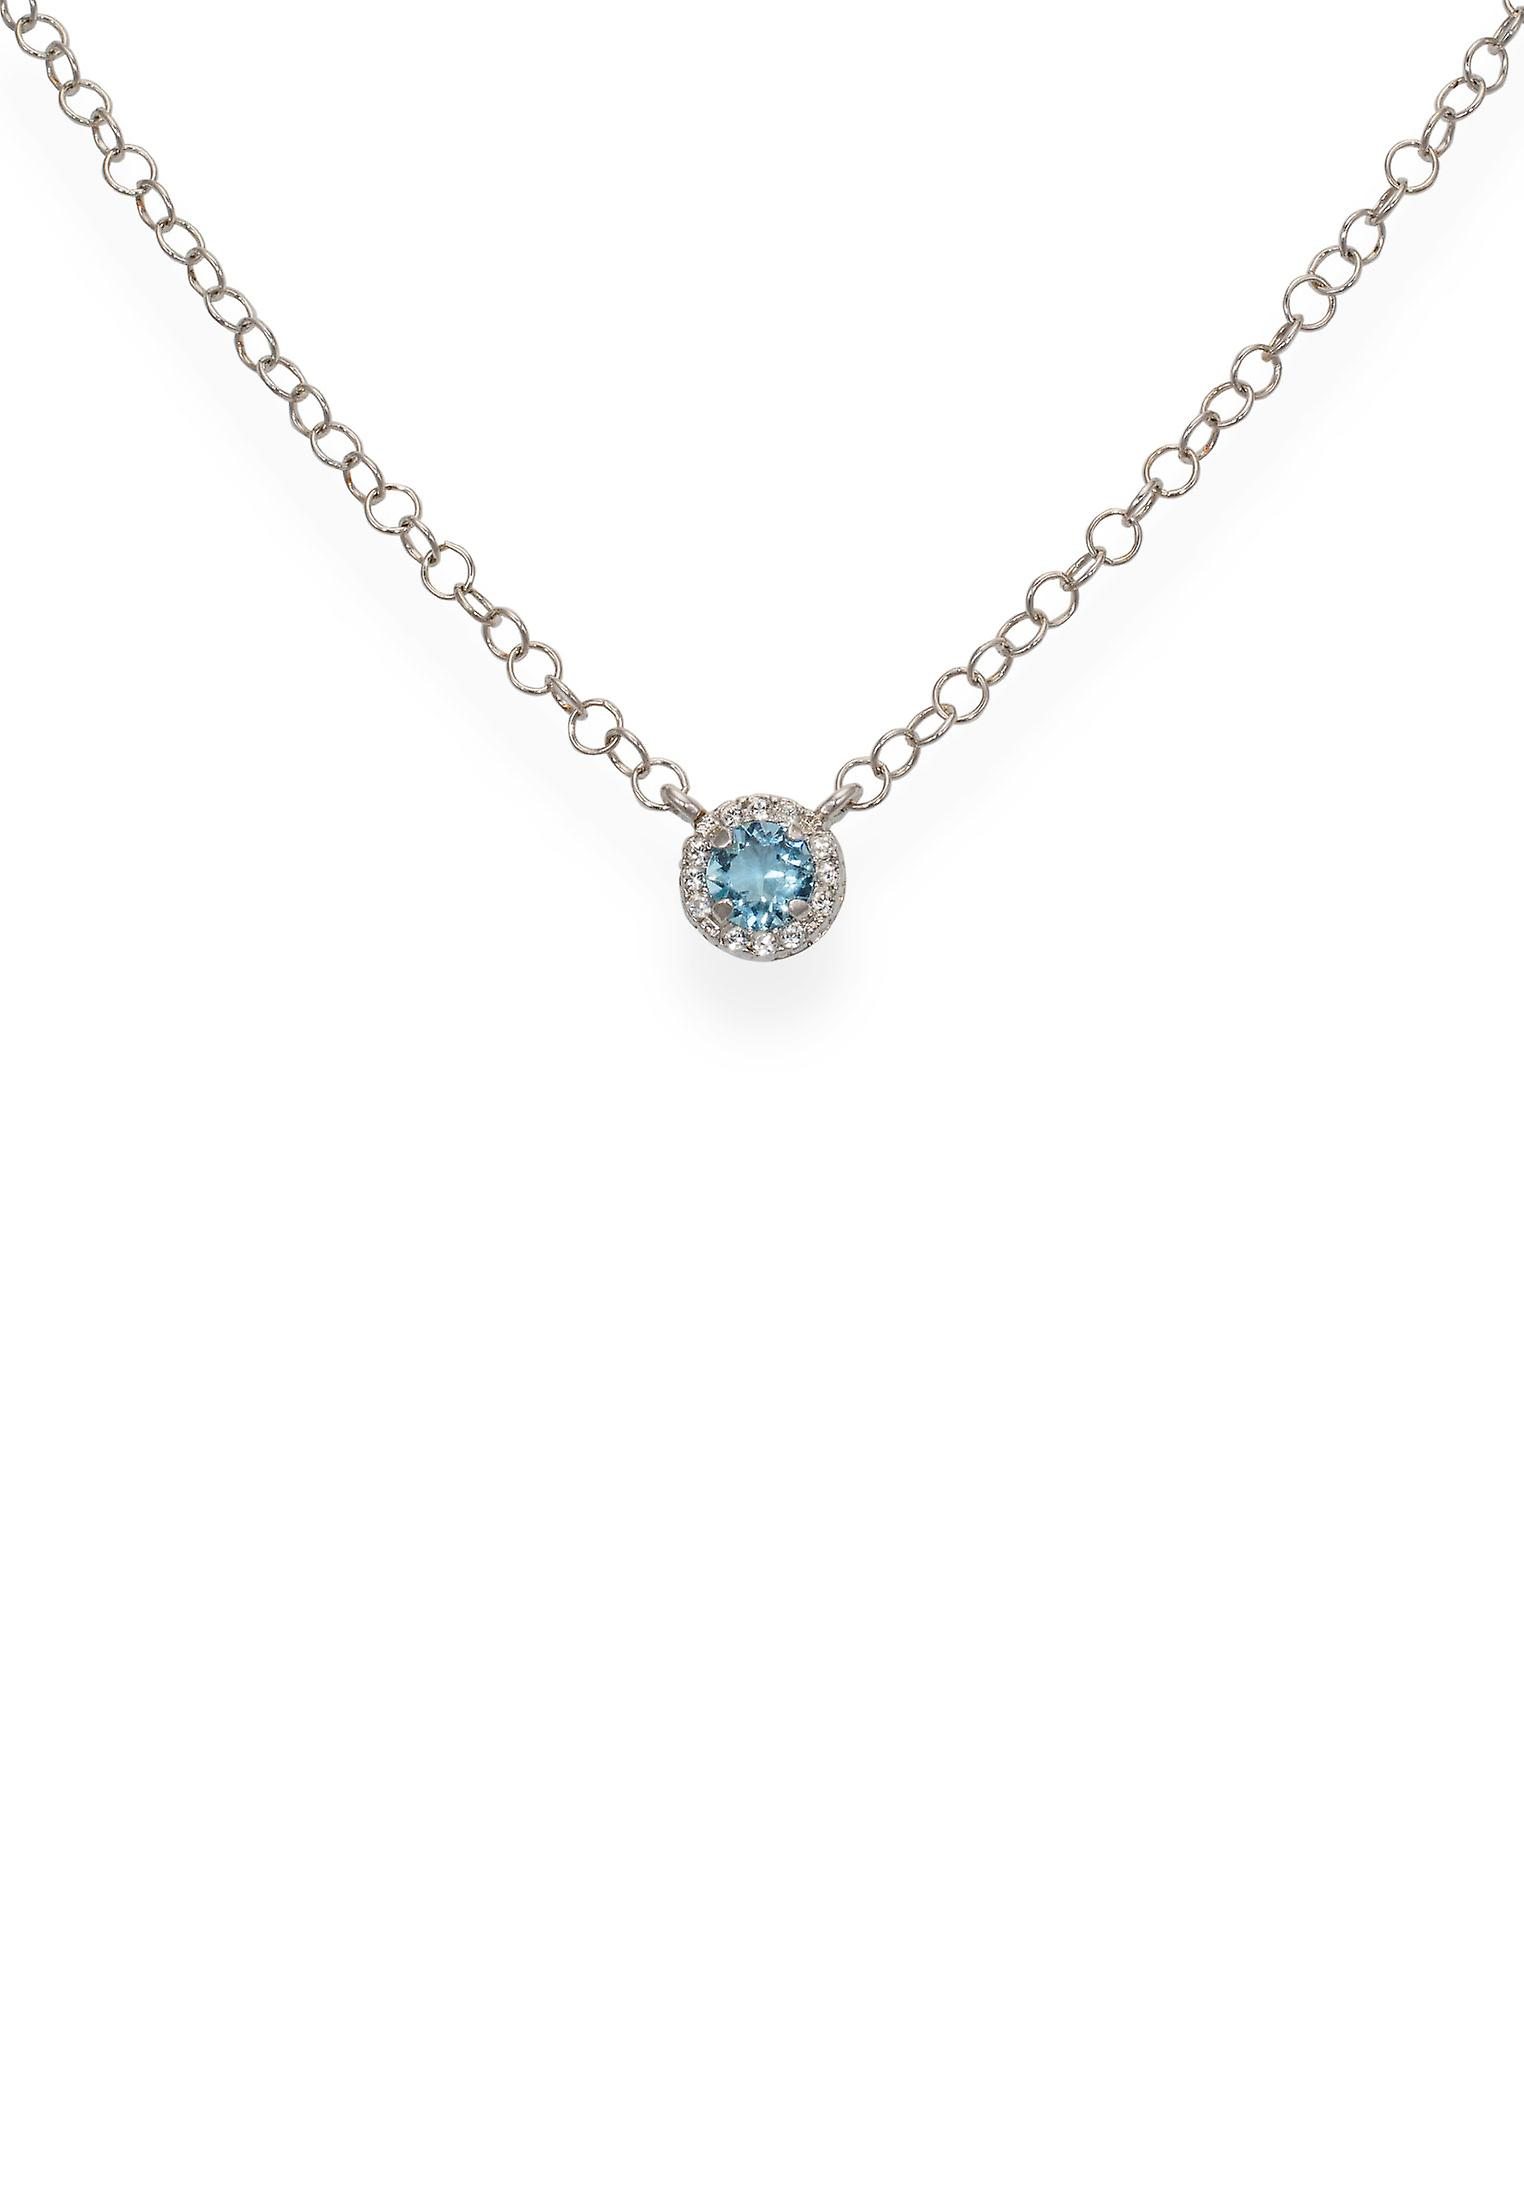 Blue pendant with crystals from Swarovski 9264